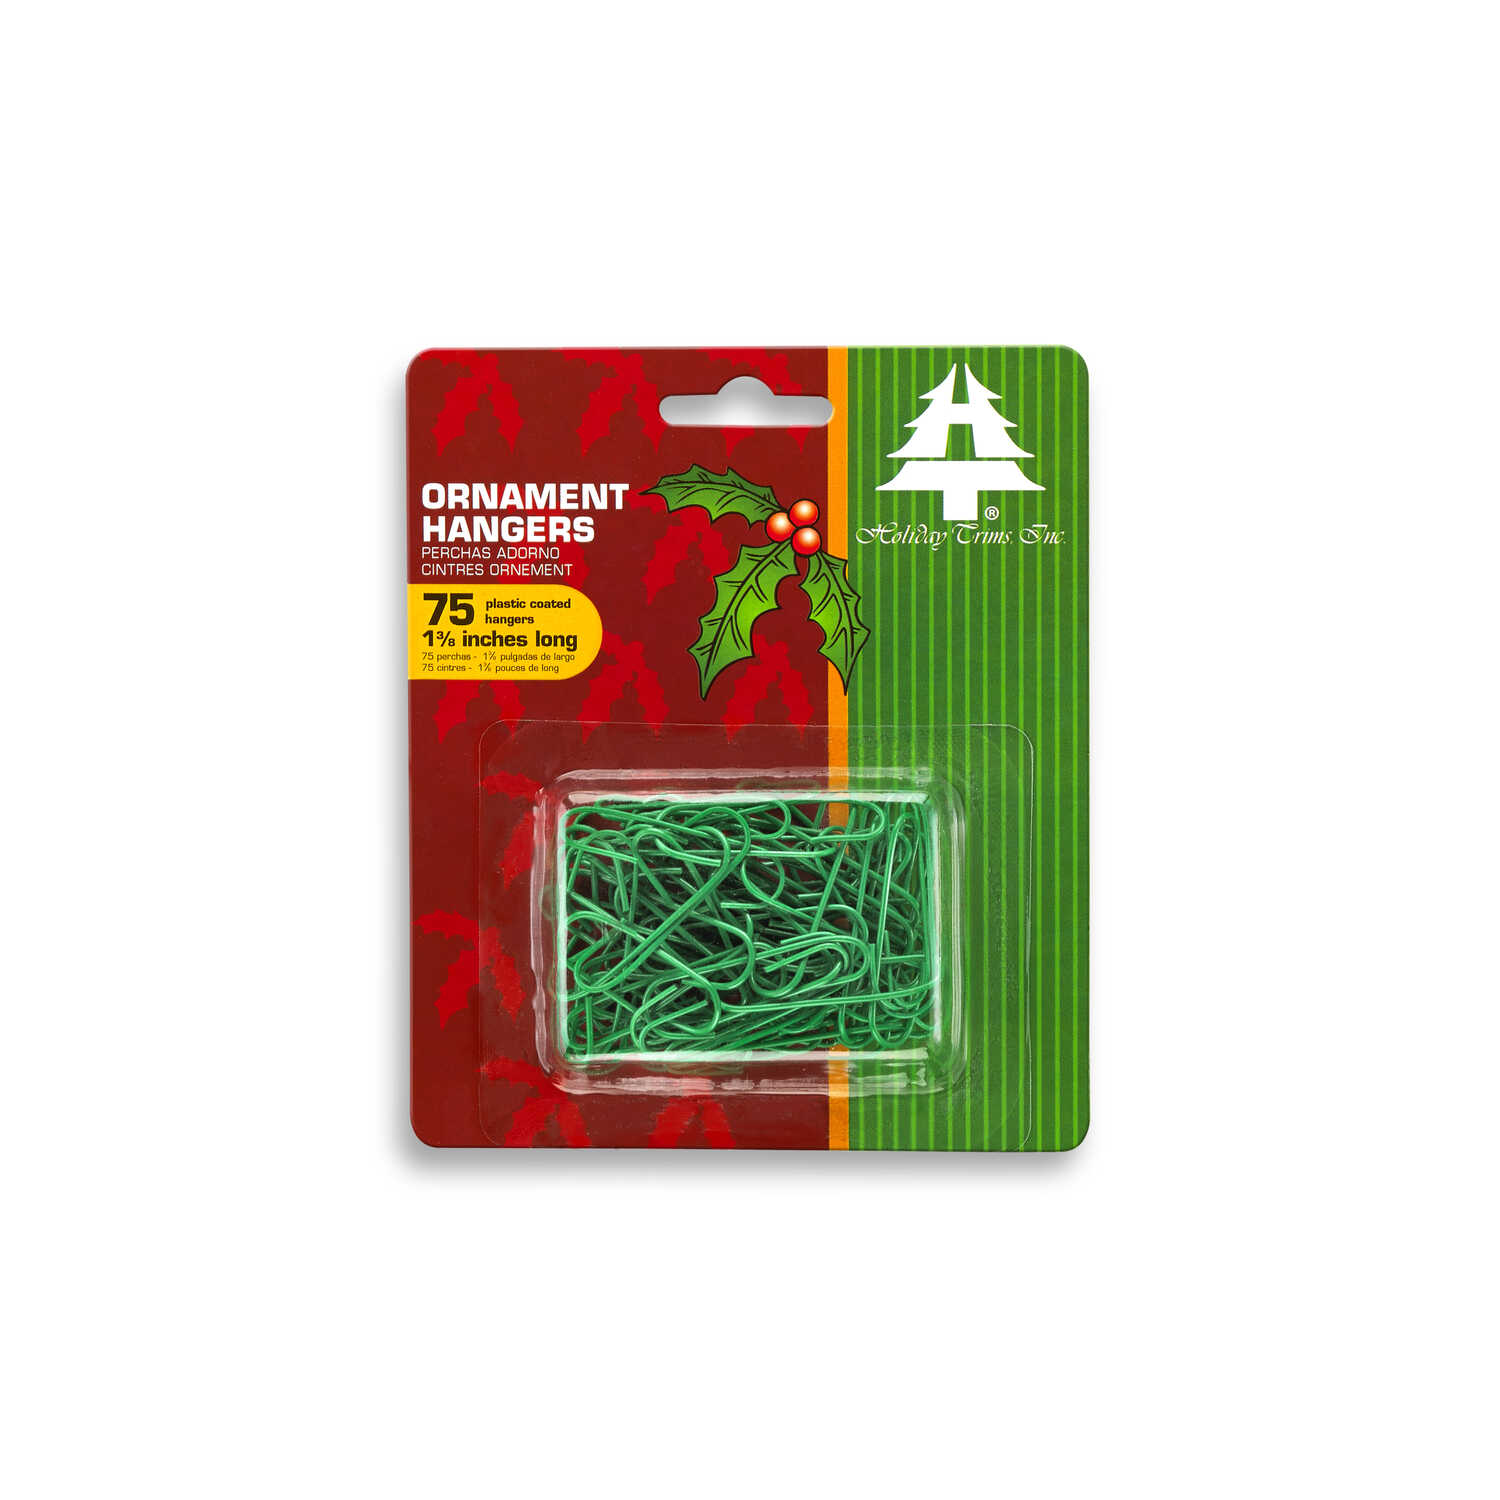 Holiday Trims  Ornament Hooks  Ornament Hangers  Green  Plastic  0.5 inch  75 pk